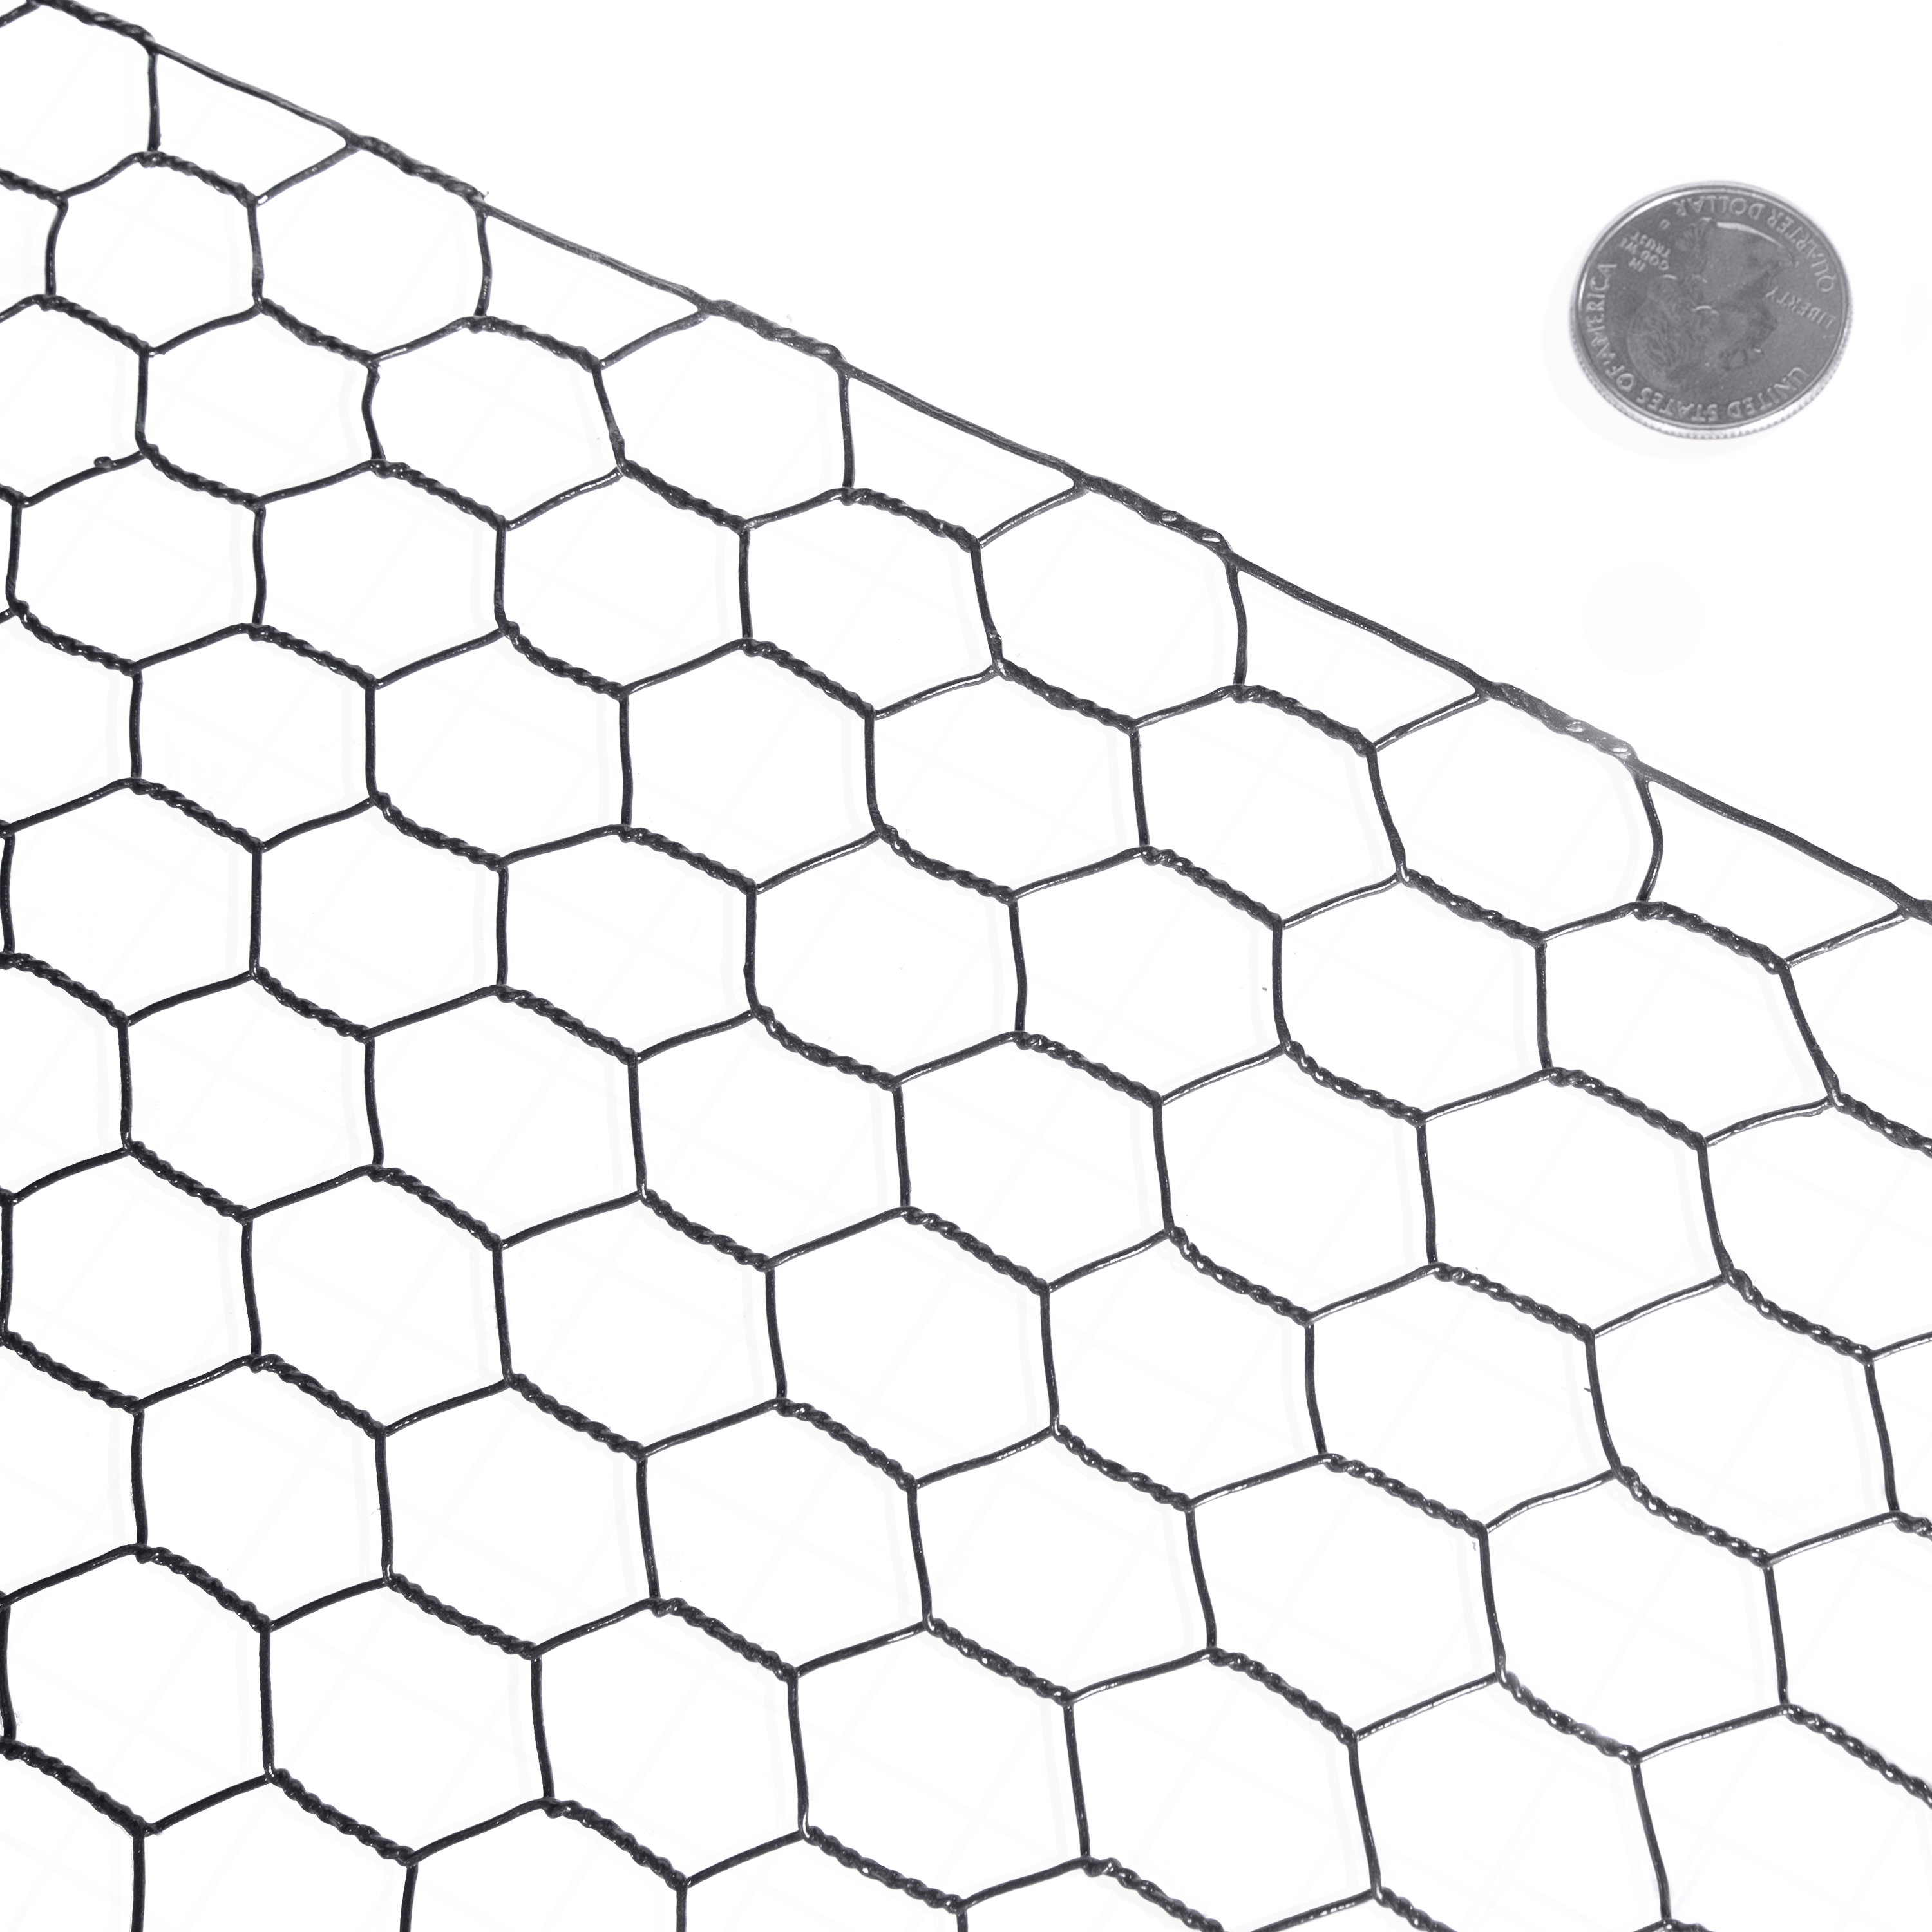 "Fencer Wire 16 Gauge Black Vinyl Coated Hex / Poultry Netting Mesh 1.5"" (4 ft. x 150 ft.)"